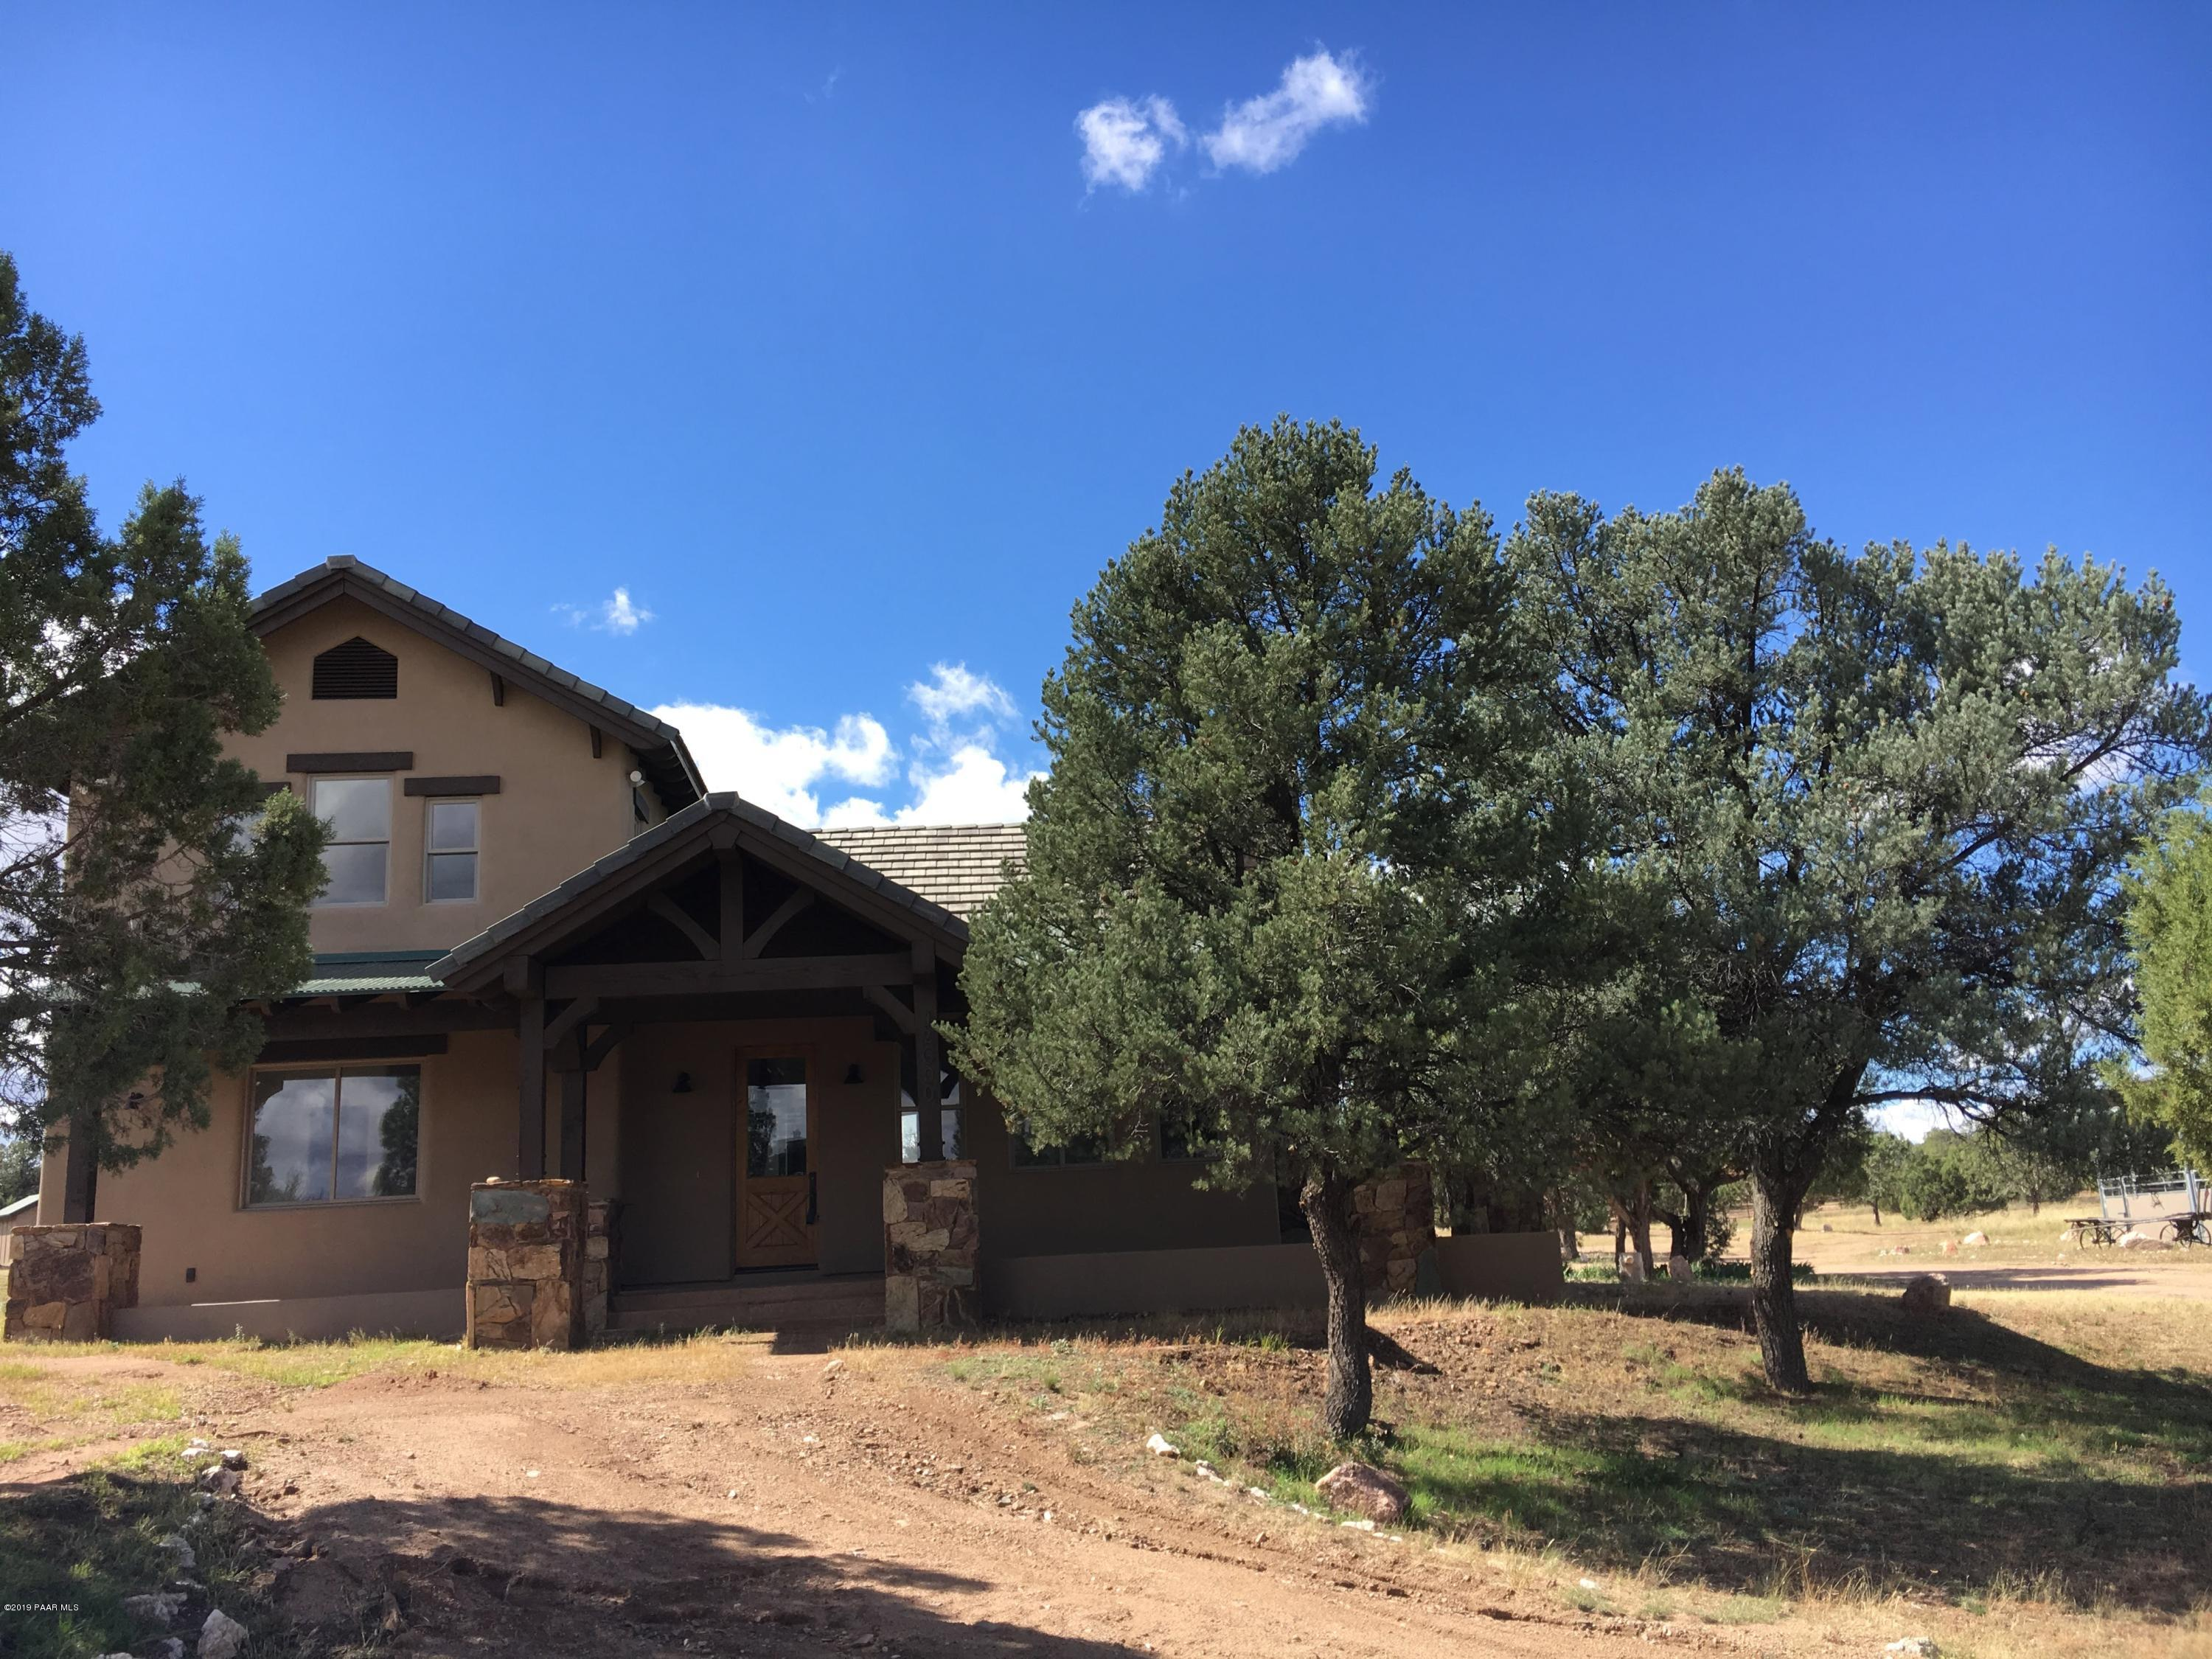 Photo of 12600 Pheasant Run, Prescott, AZ 86305